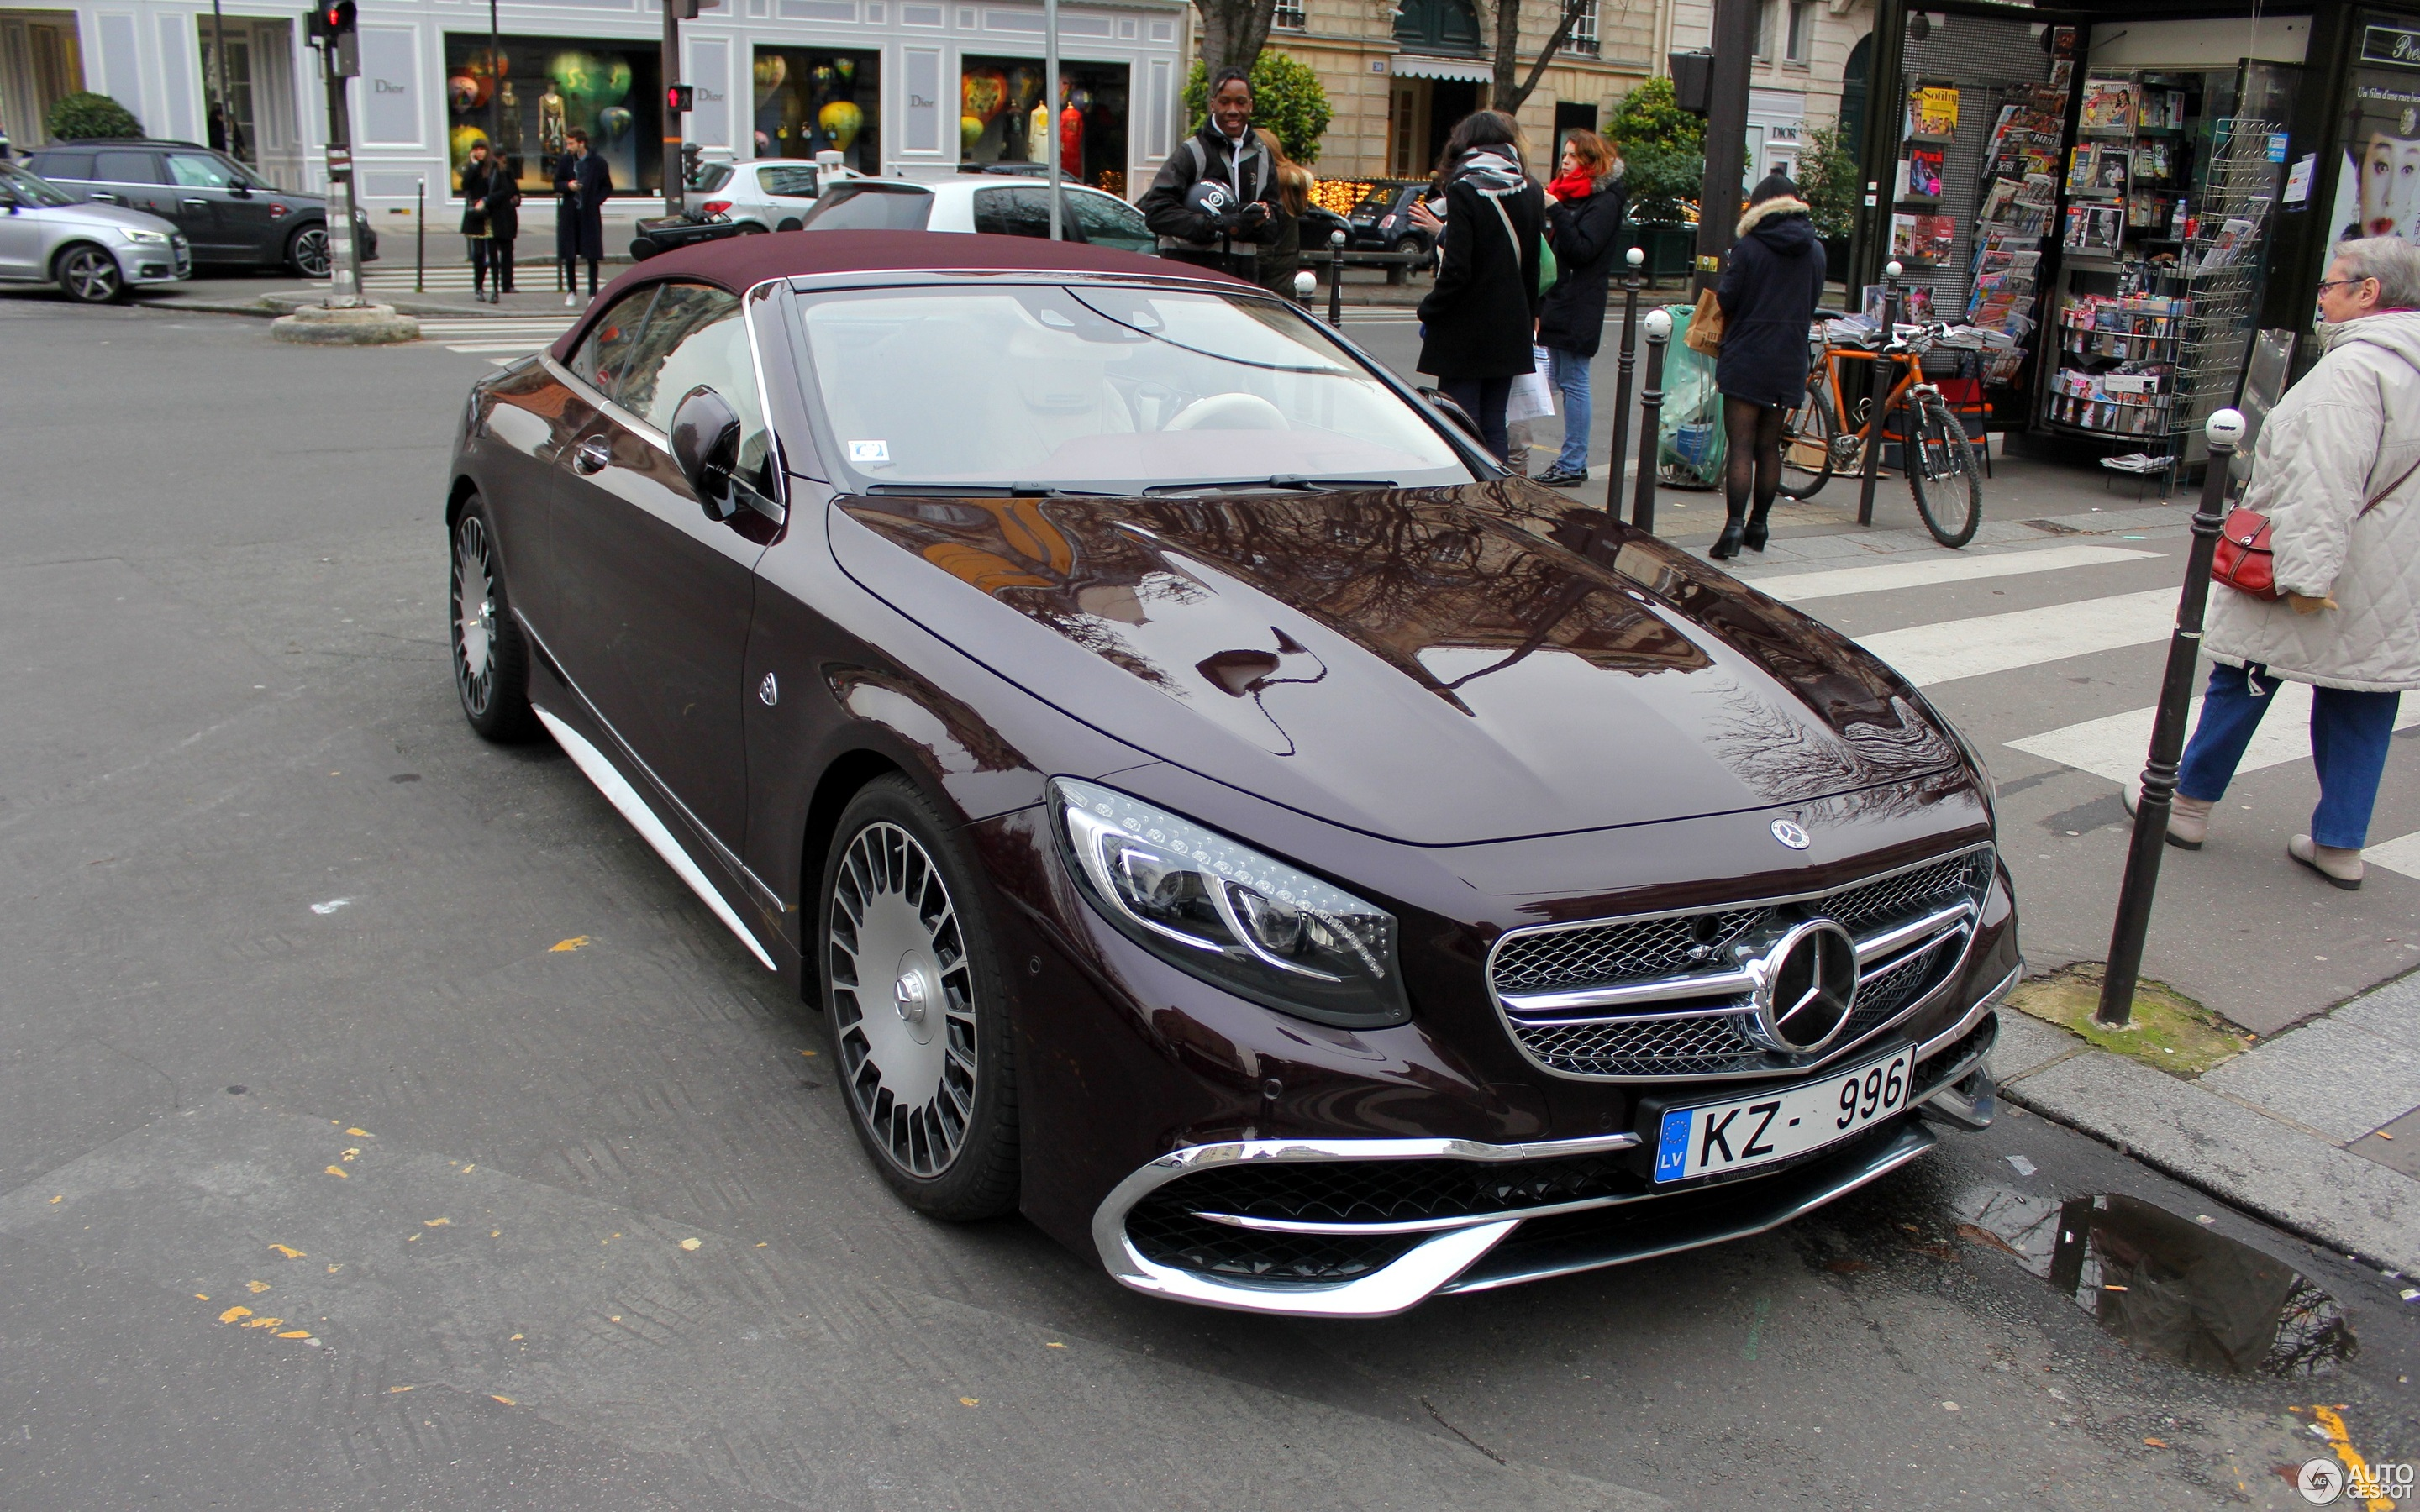 https://ag-spots-2017.o.auroraobjects.eu/2017/12/20/other/2880-1800-crop-mercedes-maybach-s650-cabriolet-c691620122017133915_1.jpg